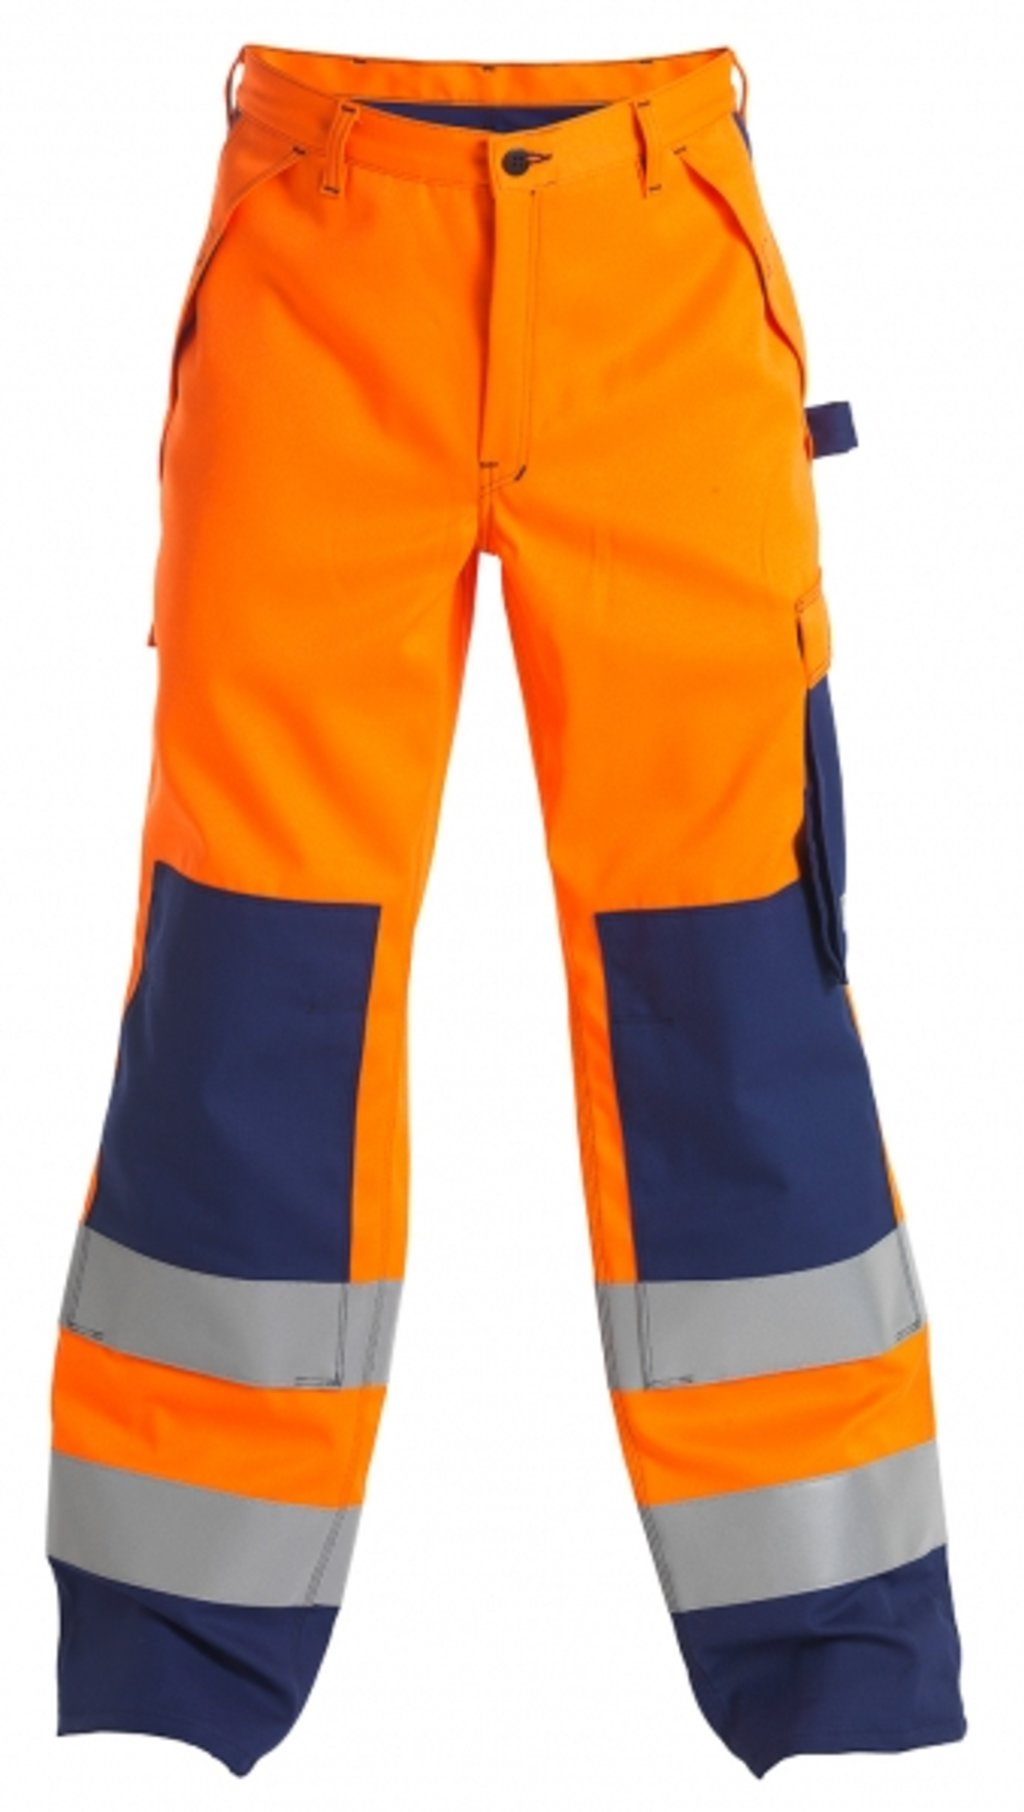 FE Engel Safety+ arbejdsbukser, Hi-Vis Orange/Marine